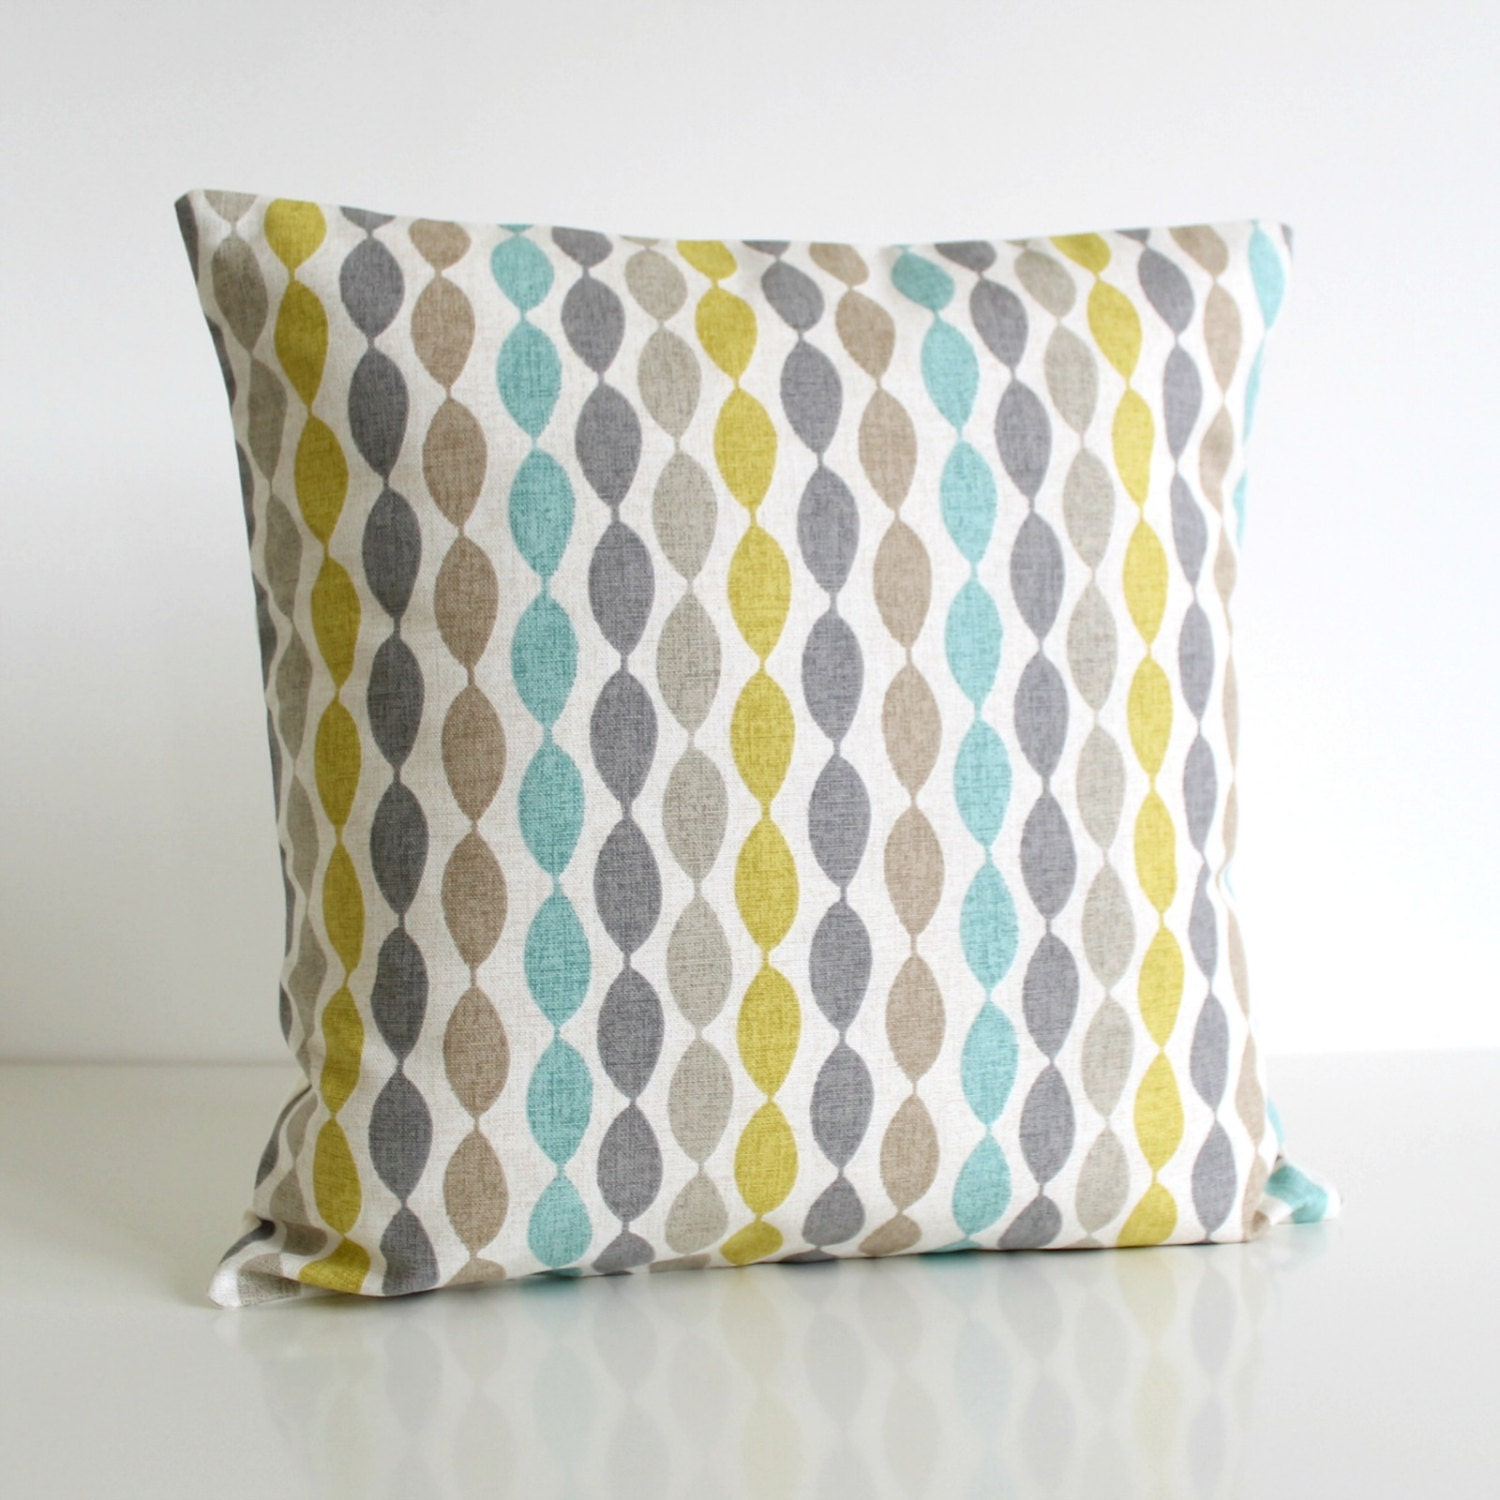 20x20 Throw Pillows Covers : Decorative Throw Pillow Cover 20x20 Sofa Pillow 20 by CoupleHome